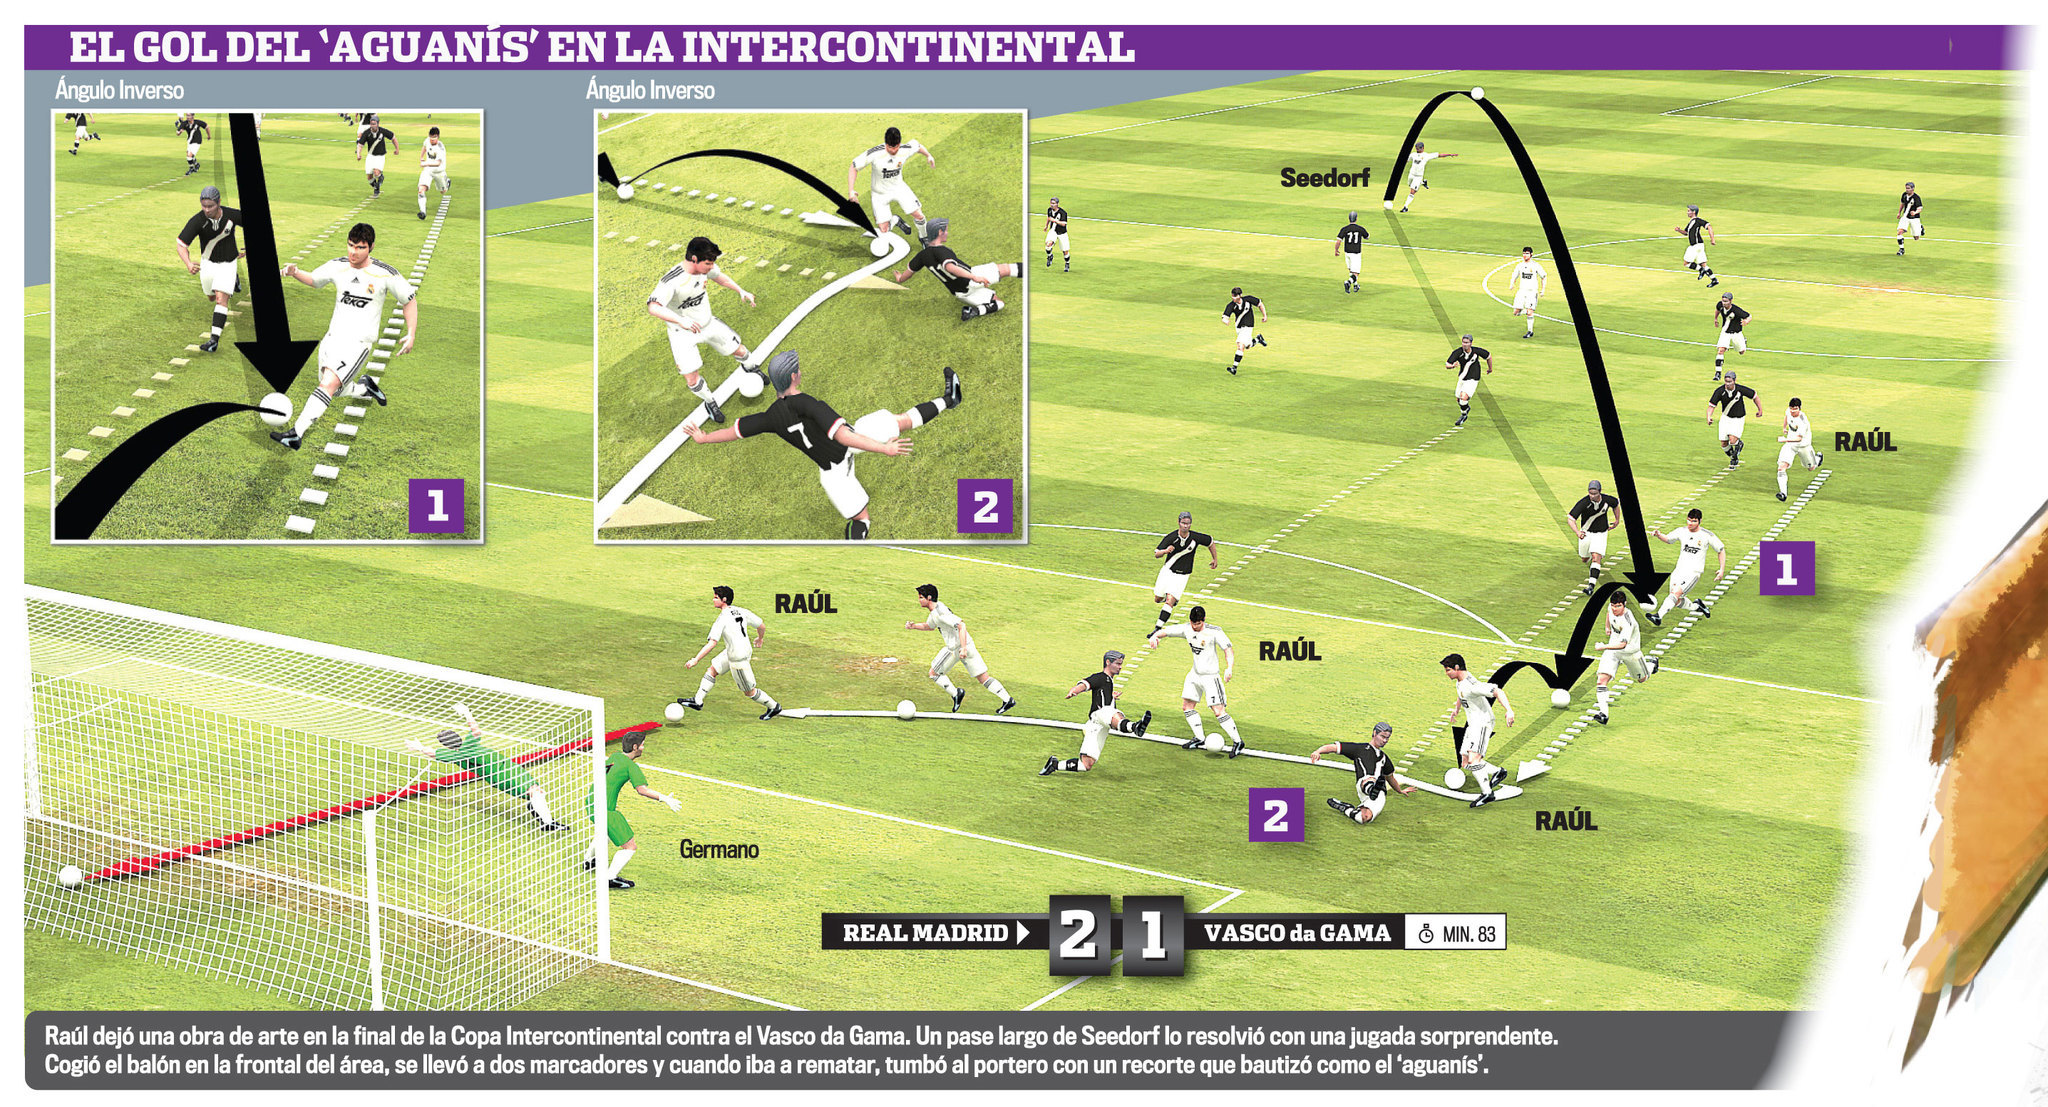 Arte Final English Real Madrid Raul S Goal That Stopped The World 20 Years On